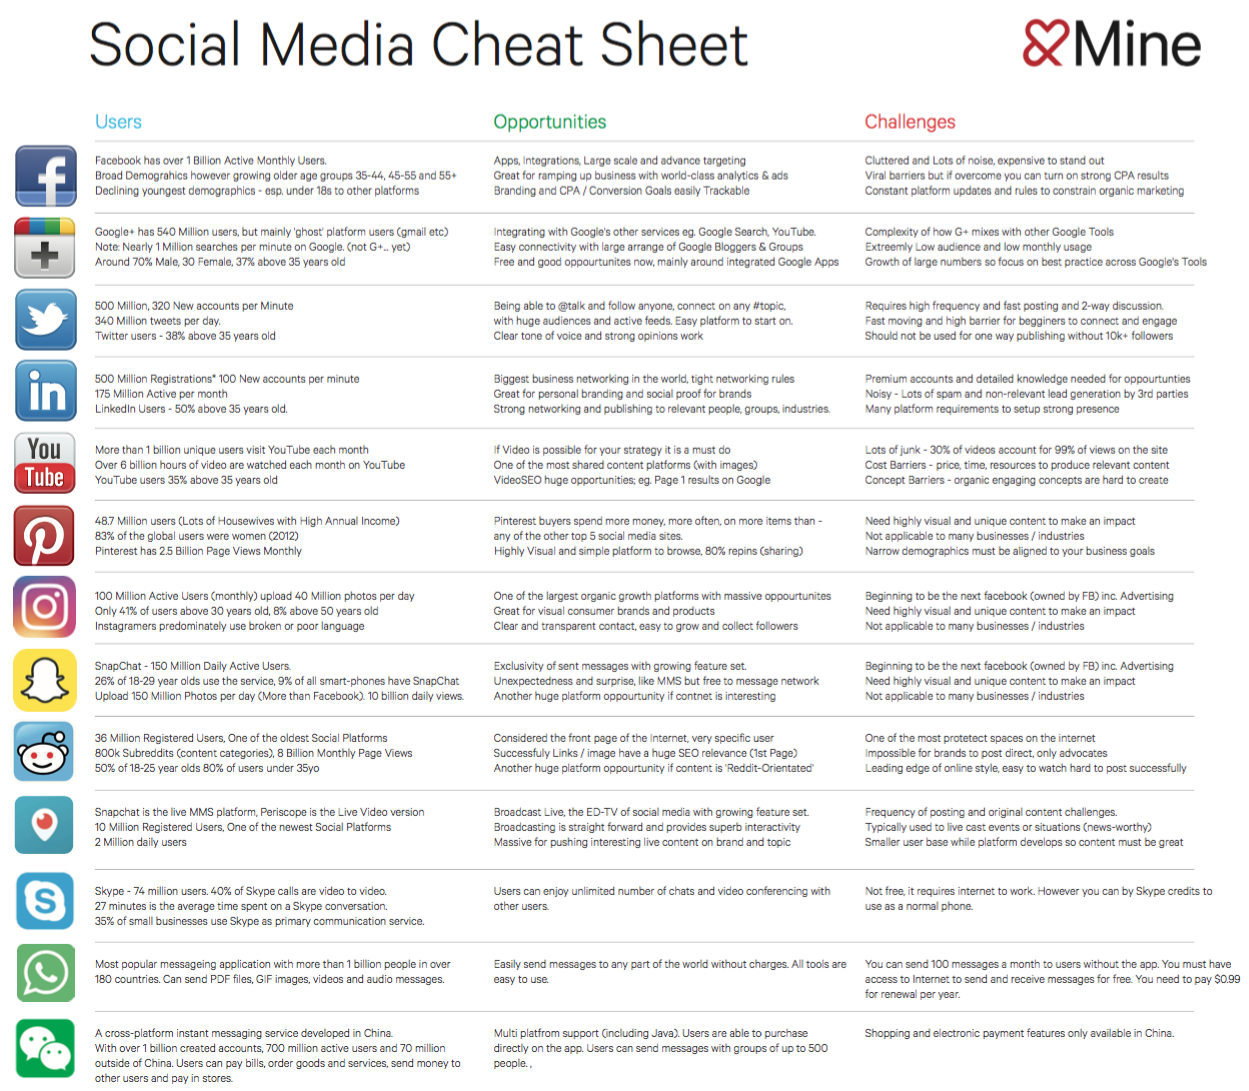 Social Media Cheat Sheet 2017